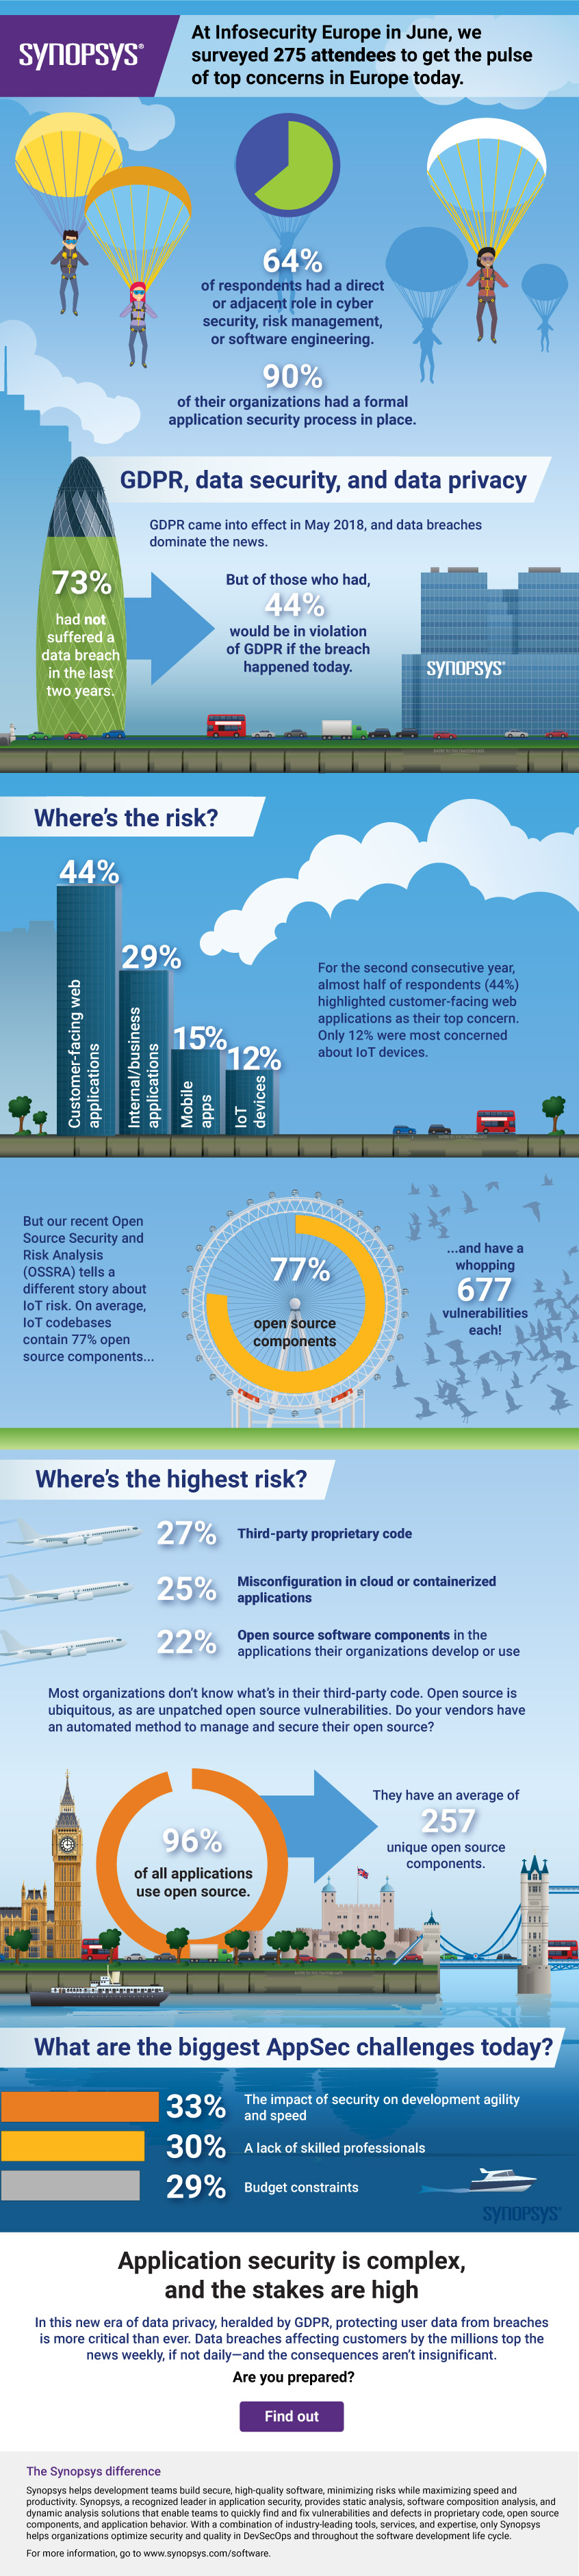 Infosecurity Europe survey infographic